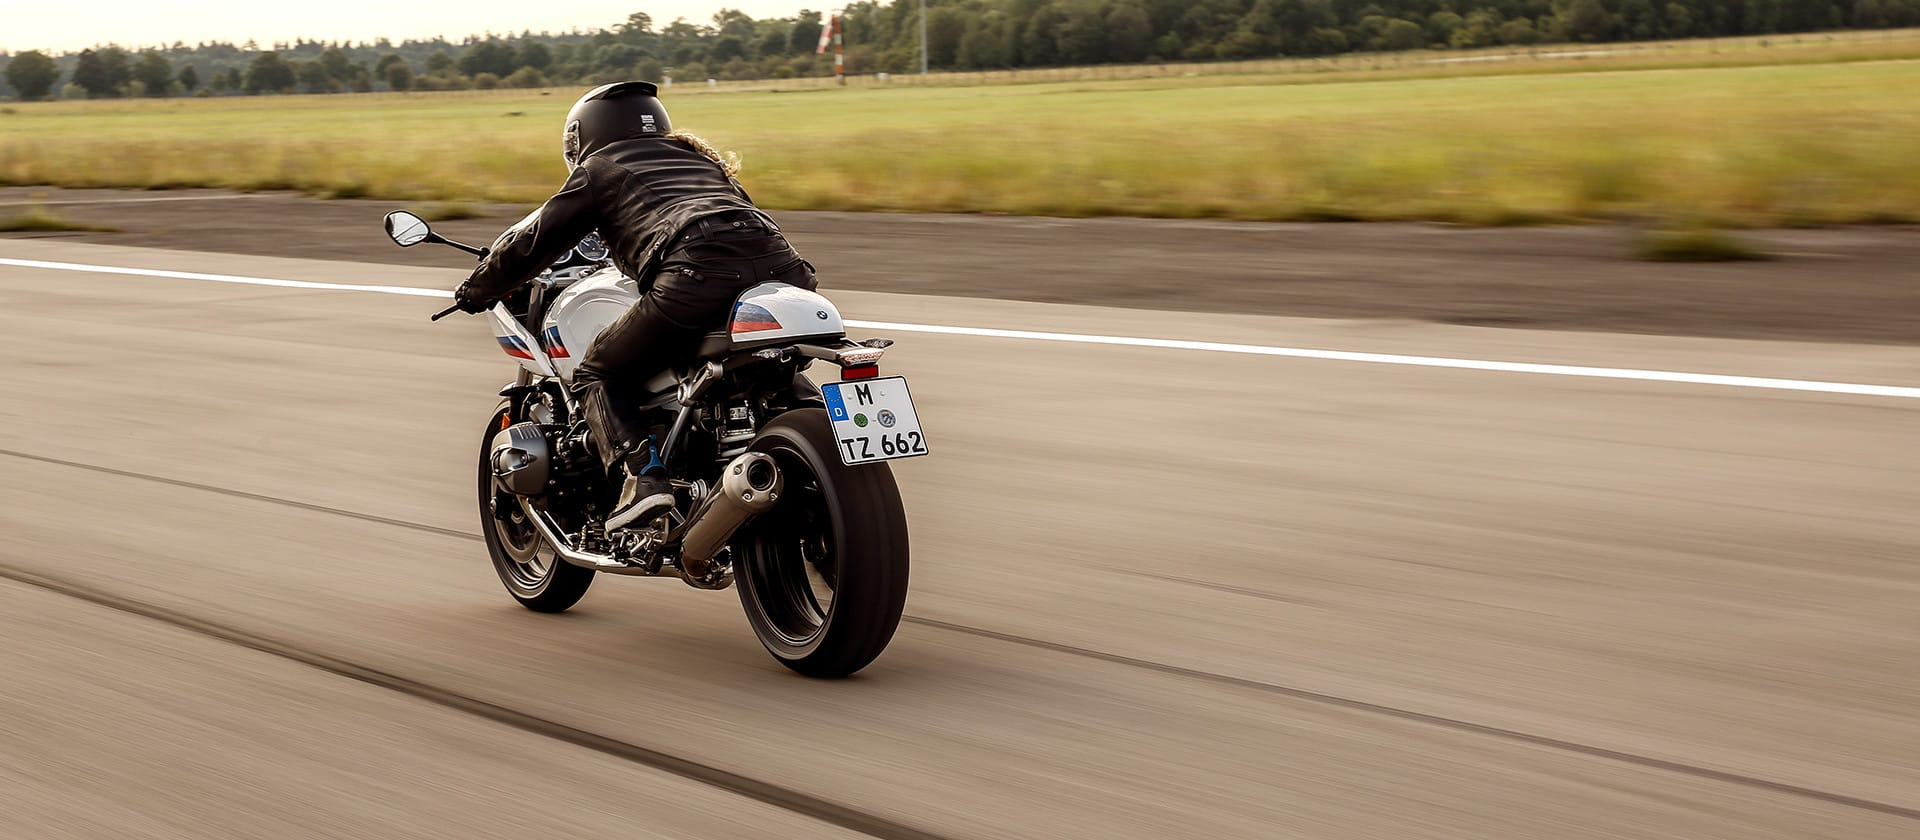 R NineT Racer as seen from behind